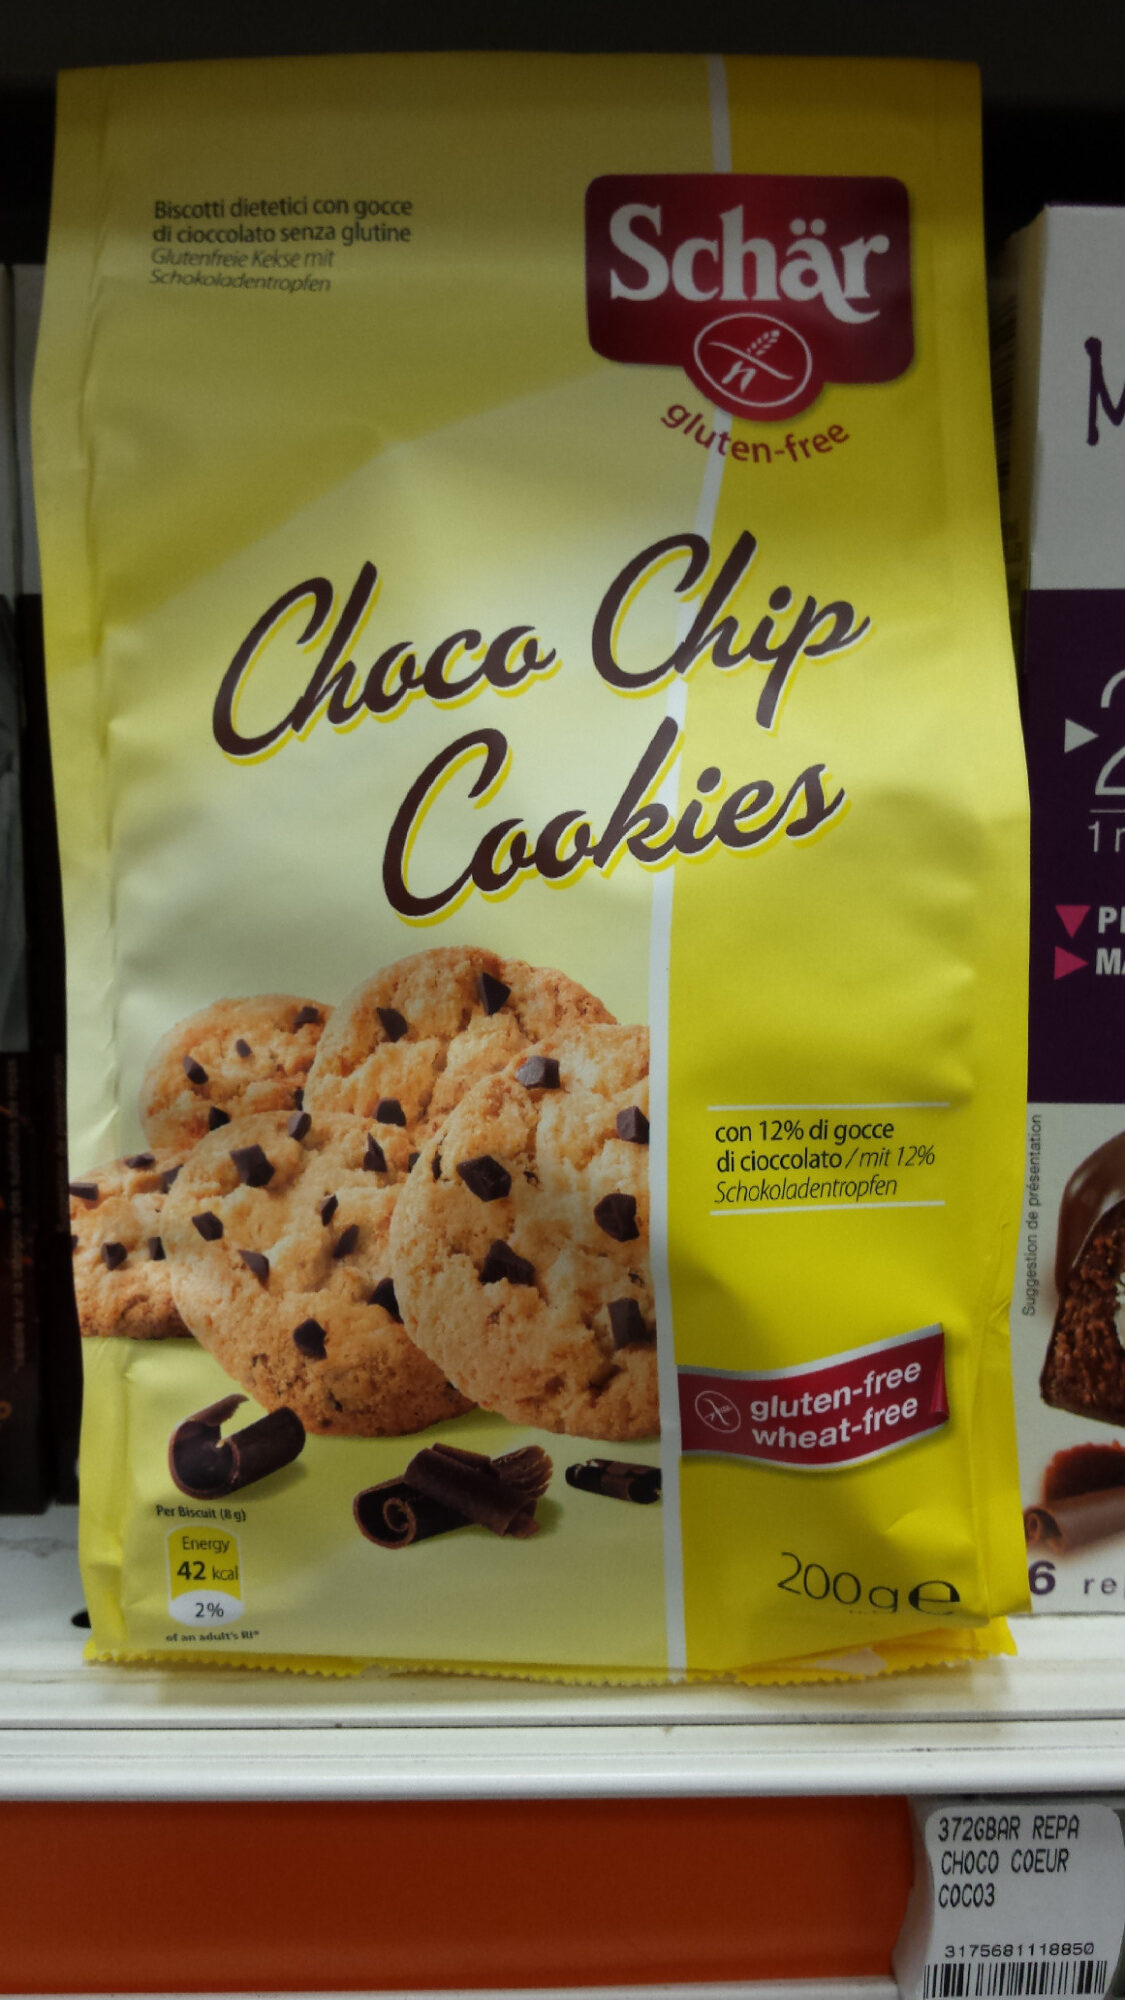 Choko Chip Cookies - Product - nl